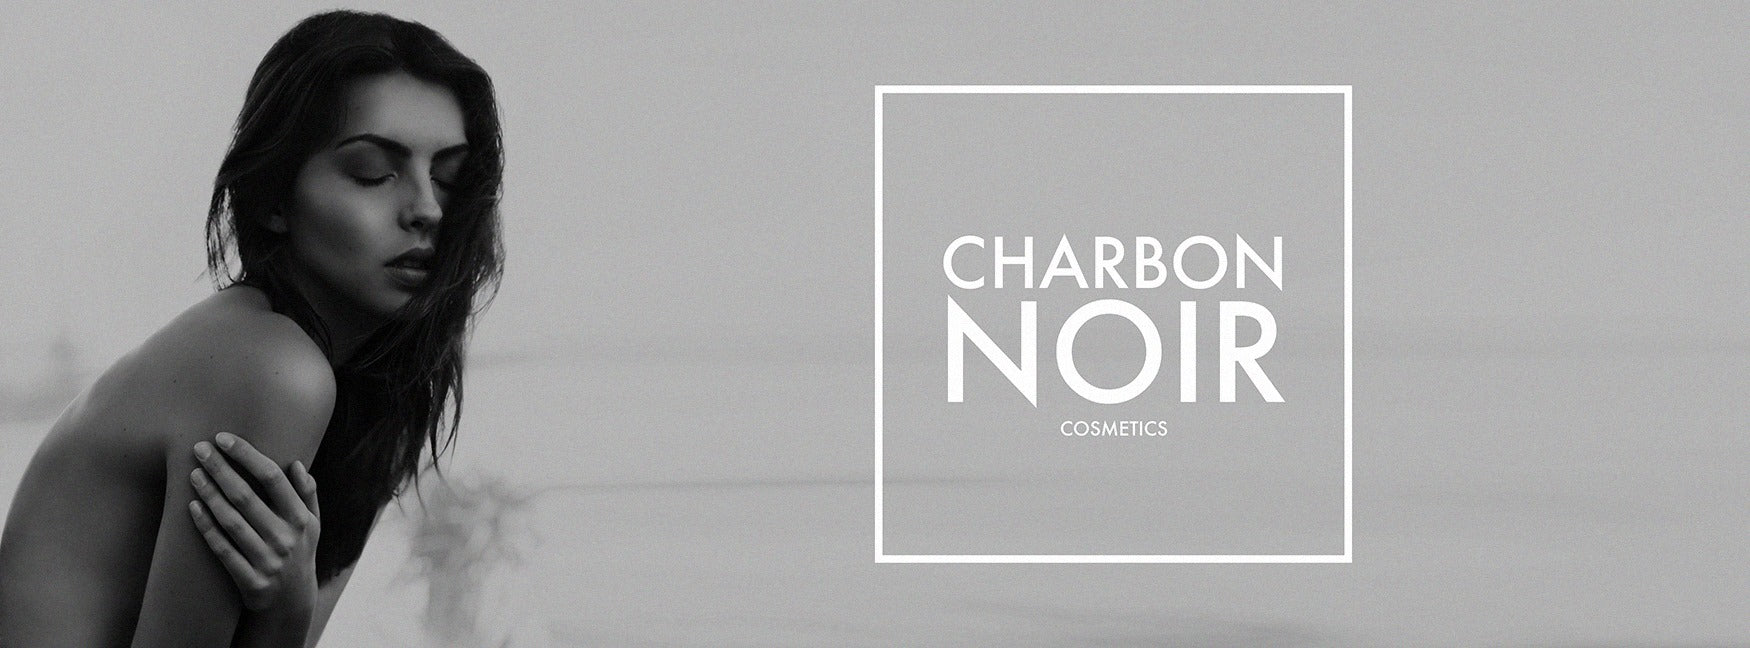 charbon noir cosmetics contact us